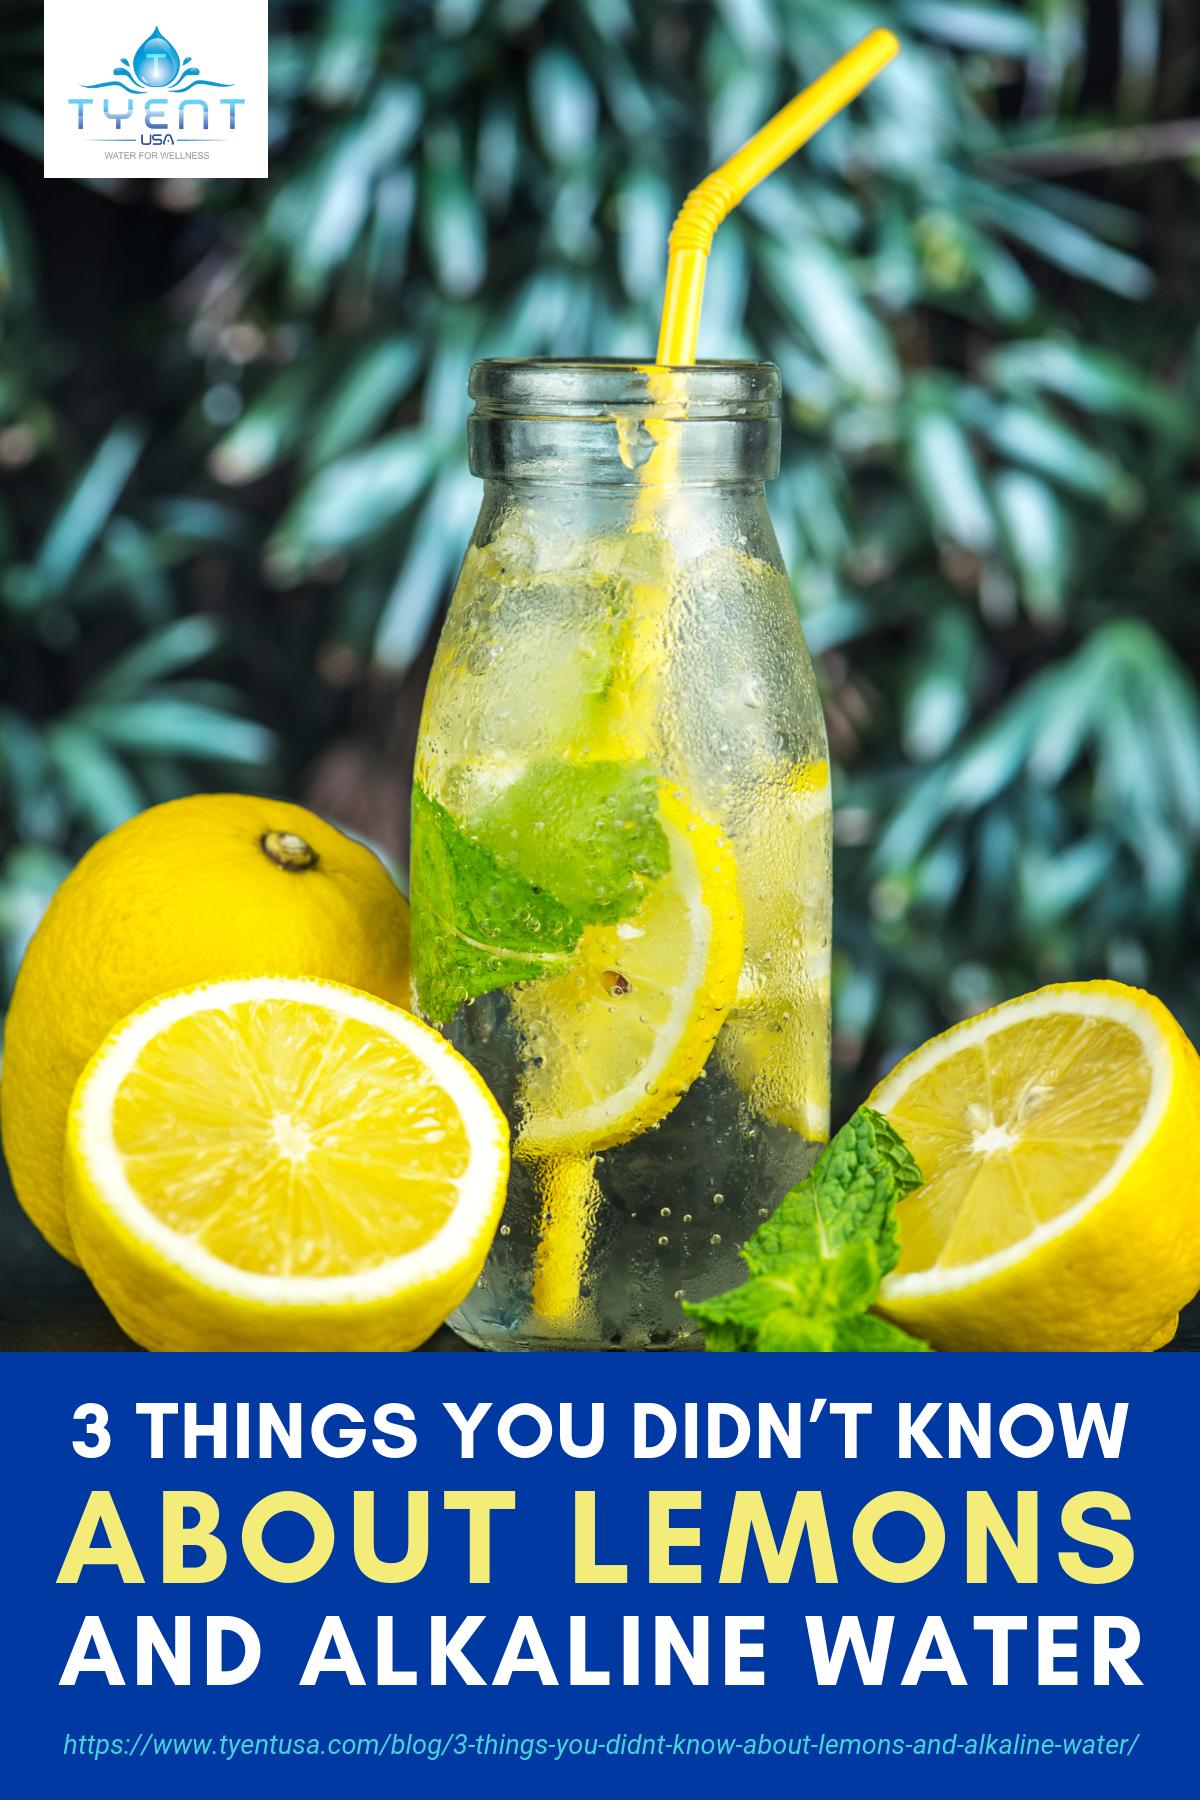 3 Things You Didn't Know About Lemons and Alkaline Water https://www.tyentusa.com/blog/3-things-you-didnt-know-about-lemons-and-alkaline-water/